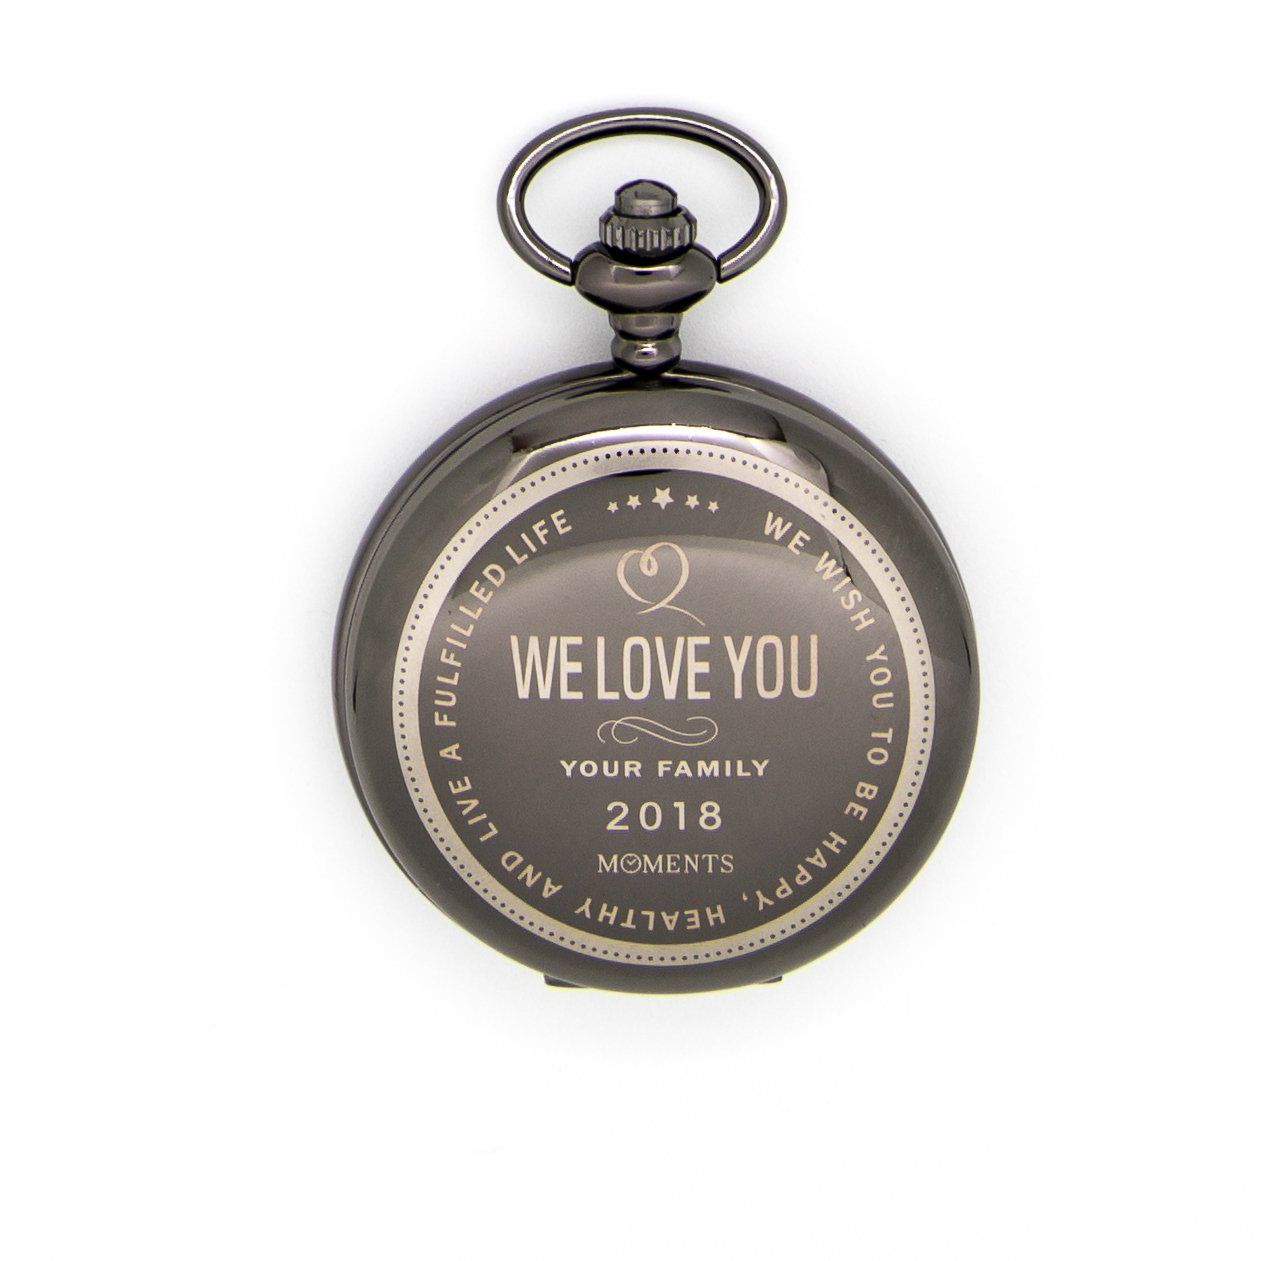 Moments Pocket Watch with Chain, Engraved with We Love You for Husband, Son or Brother, Keepsake Gift for Birthday, Anniversary, Valentines Day, Christmas by by Moments